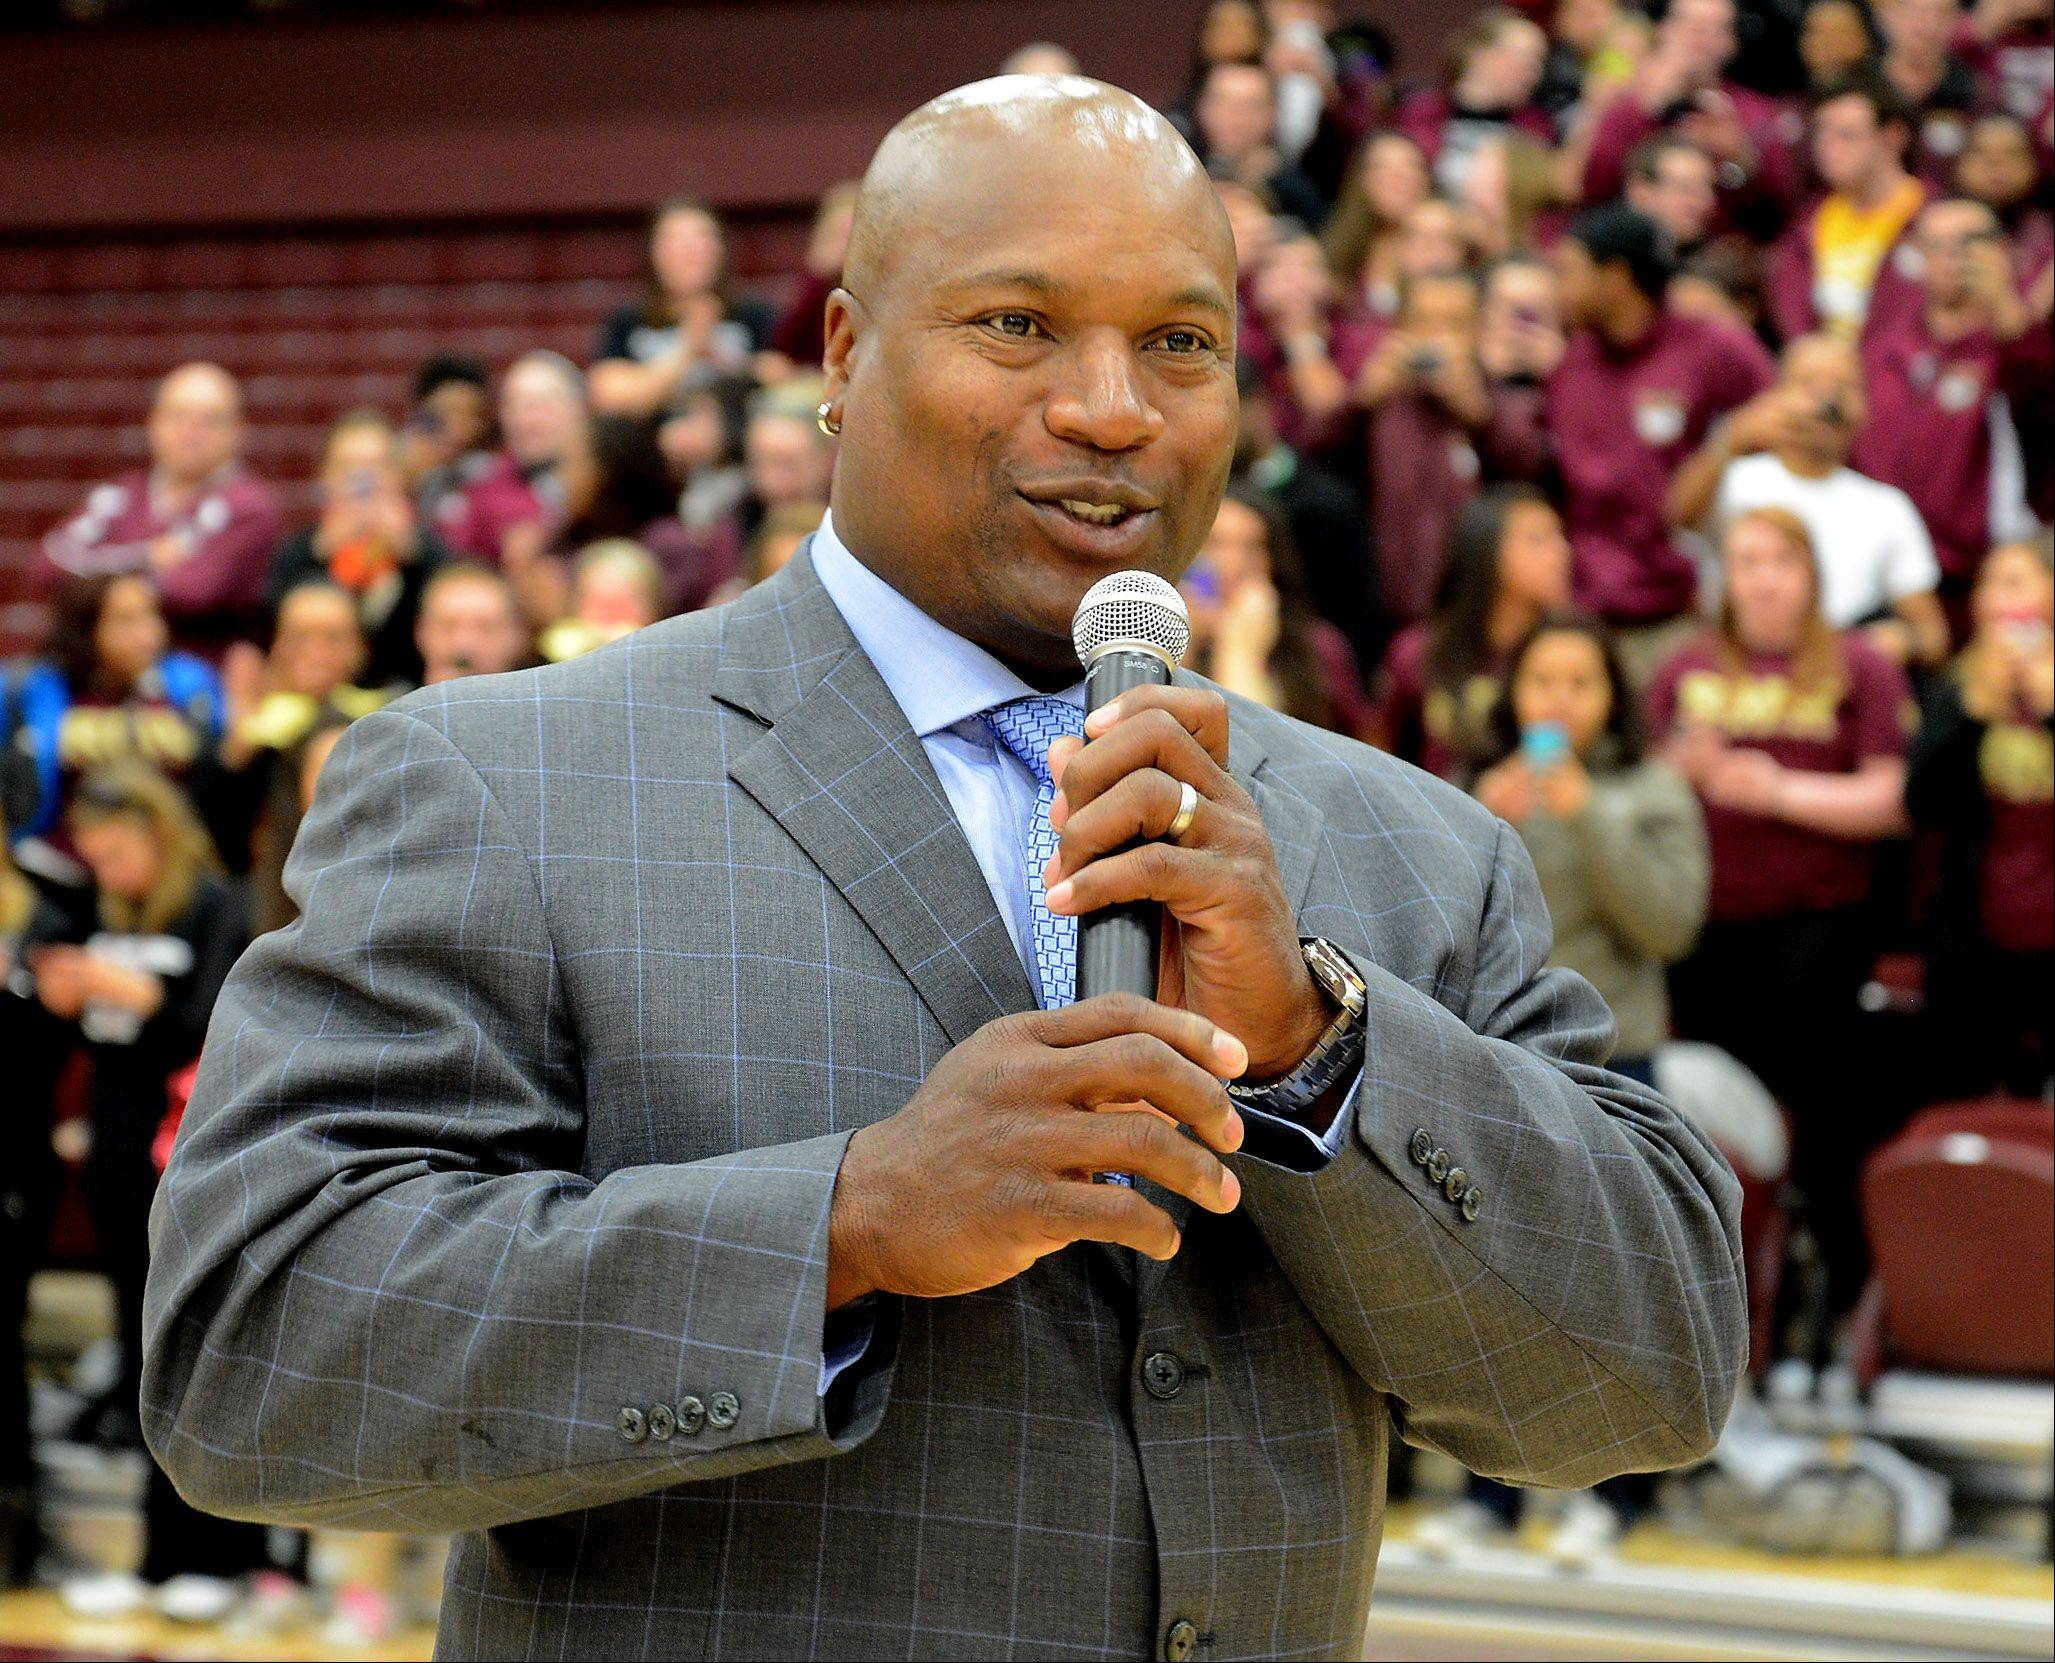 Football and baseball legend Bo Jackson talks to students during a pep rally Friday at the Arlington Heights campus of Robert Morris University. The school unveiled its new athletic convocation center.